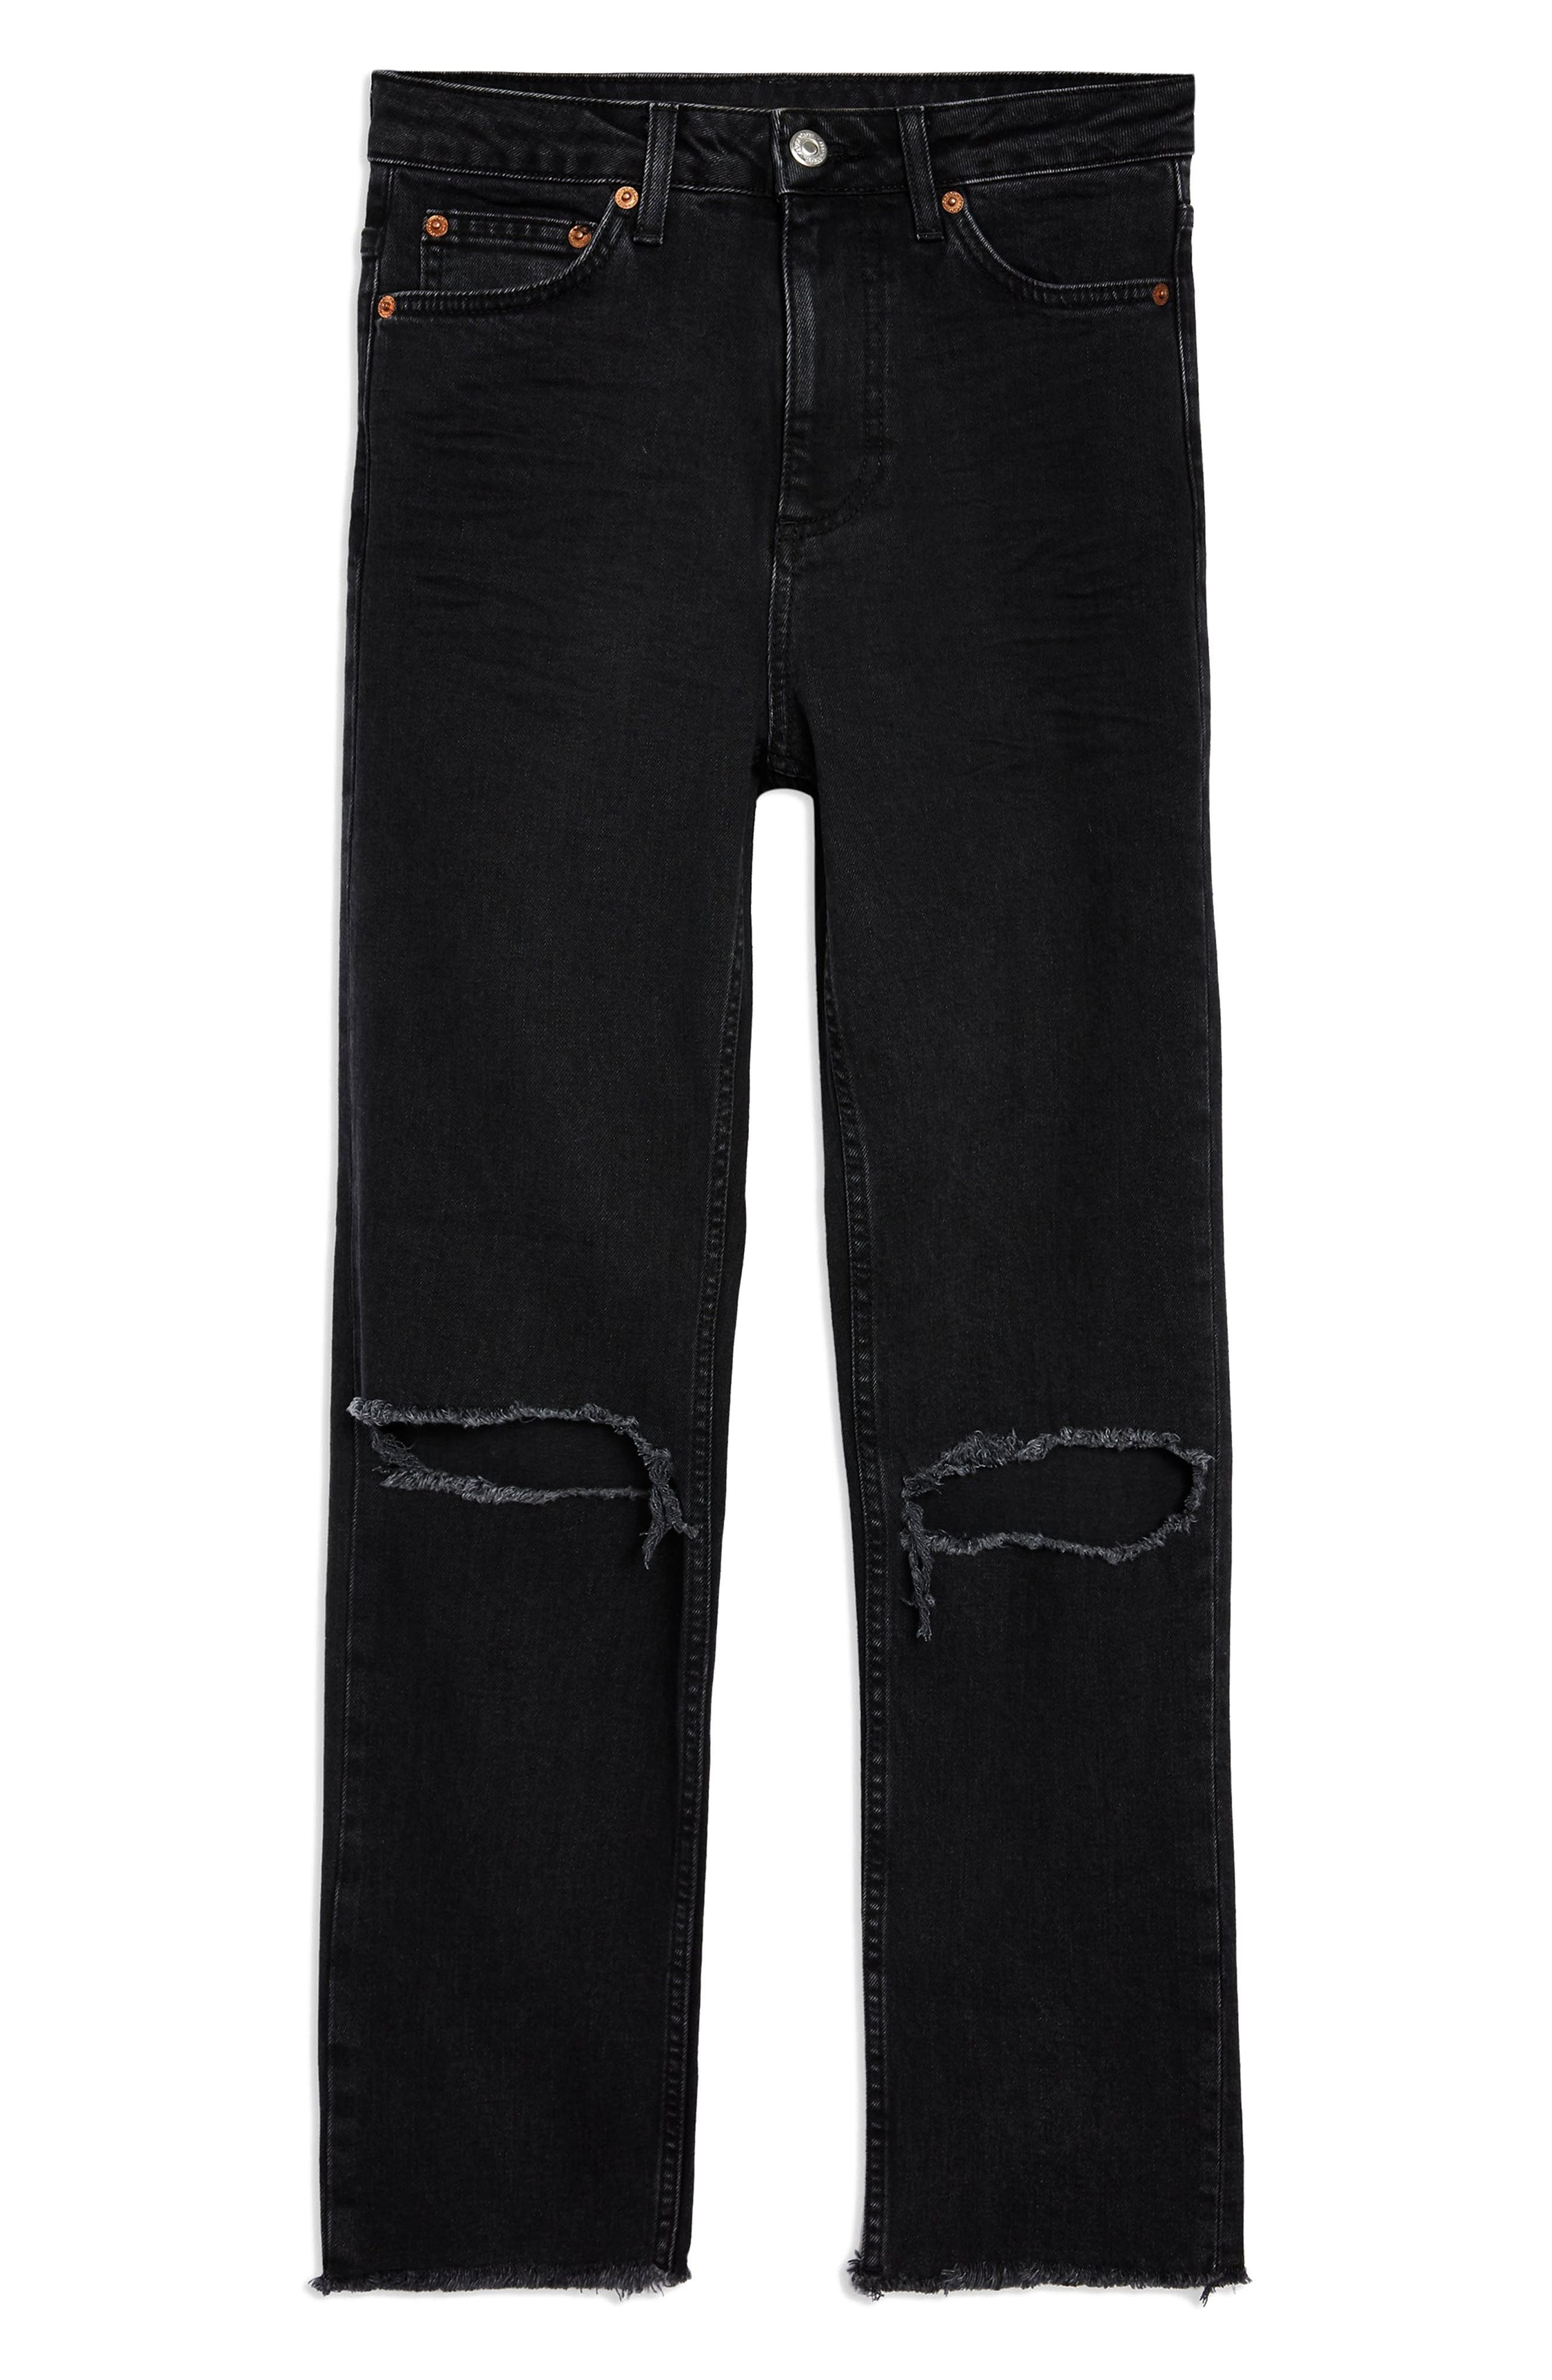 TOPSHOP,                             Ripped Straight Leg Jeans,                             Alternate thumbnail 4, color,                             WASHED BLACK